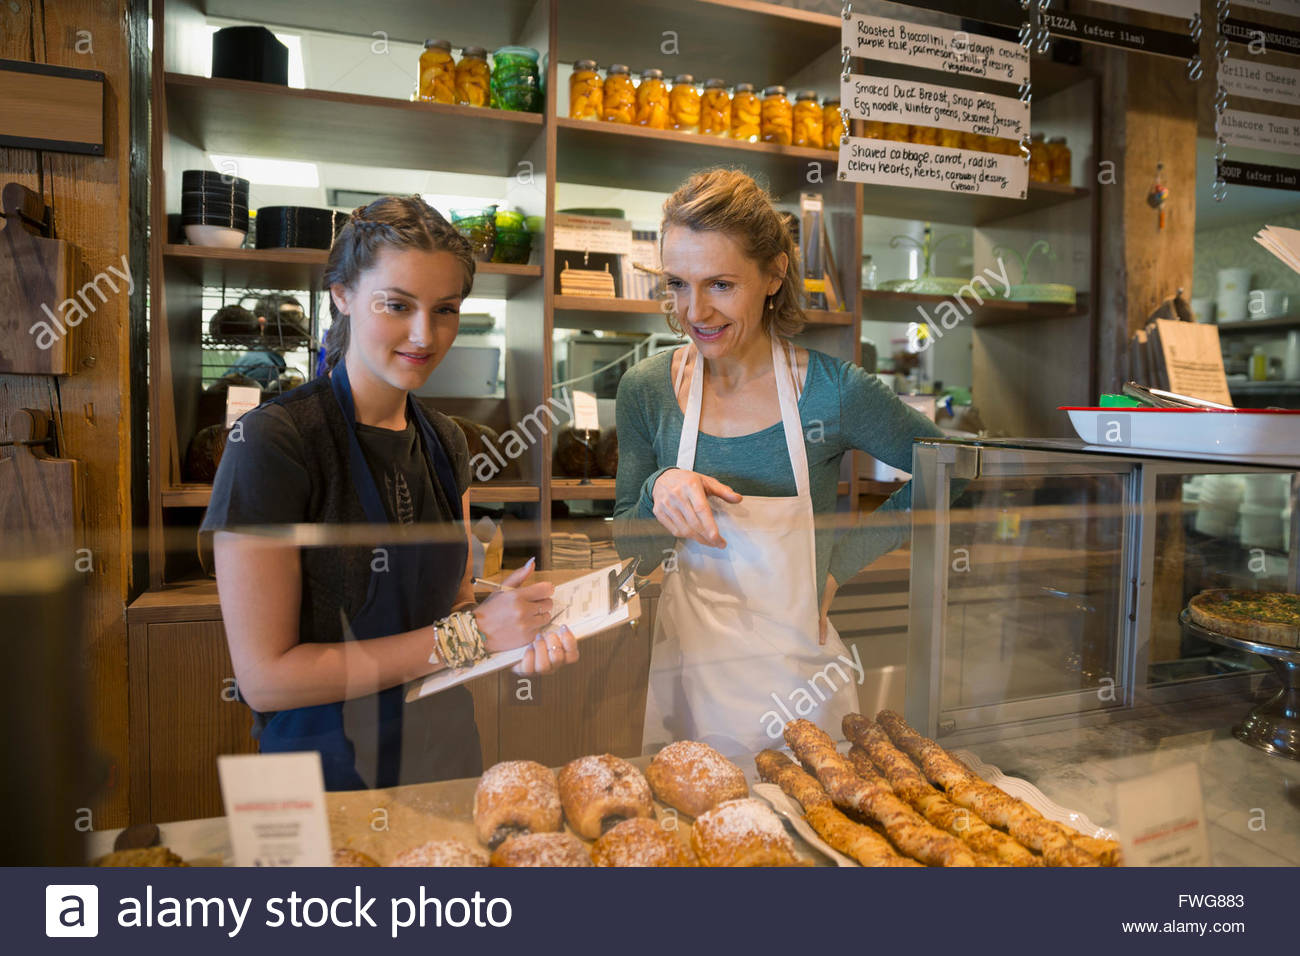 Bakery owner and worker with clipboard display case - Stock Image